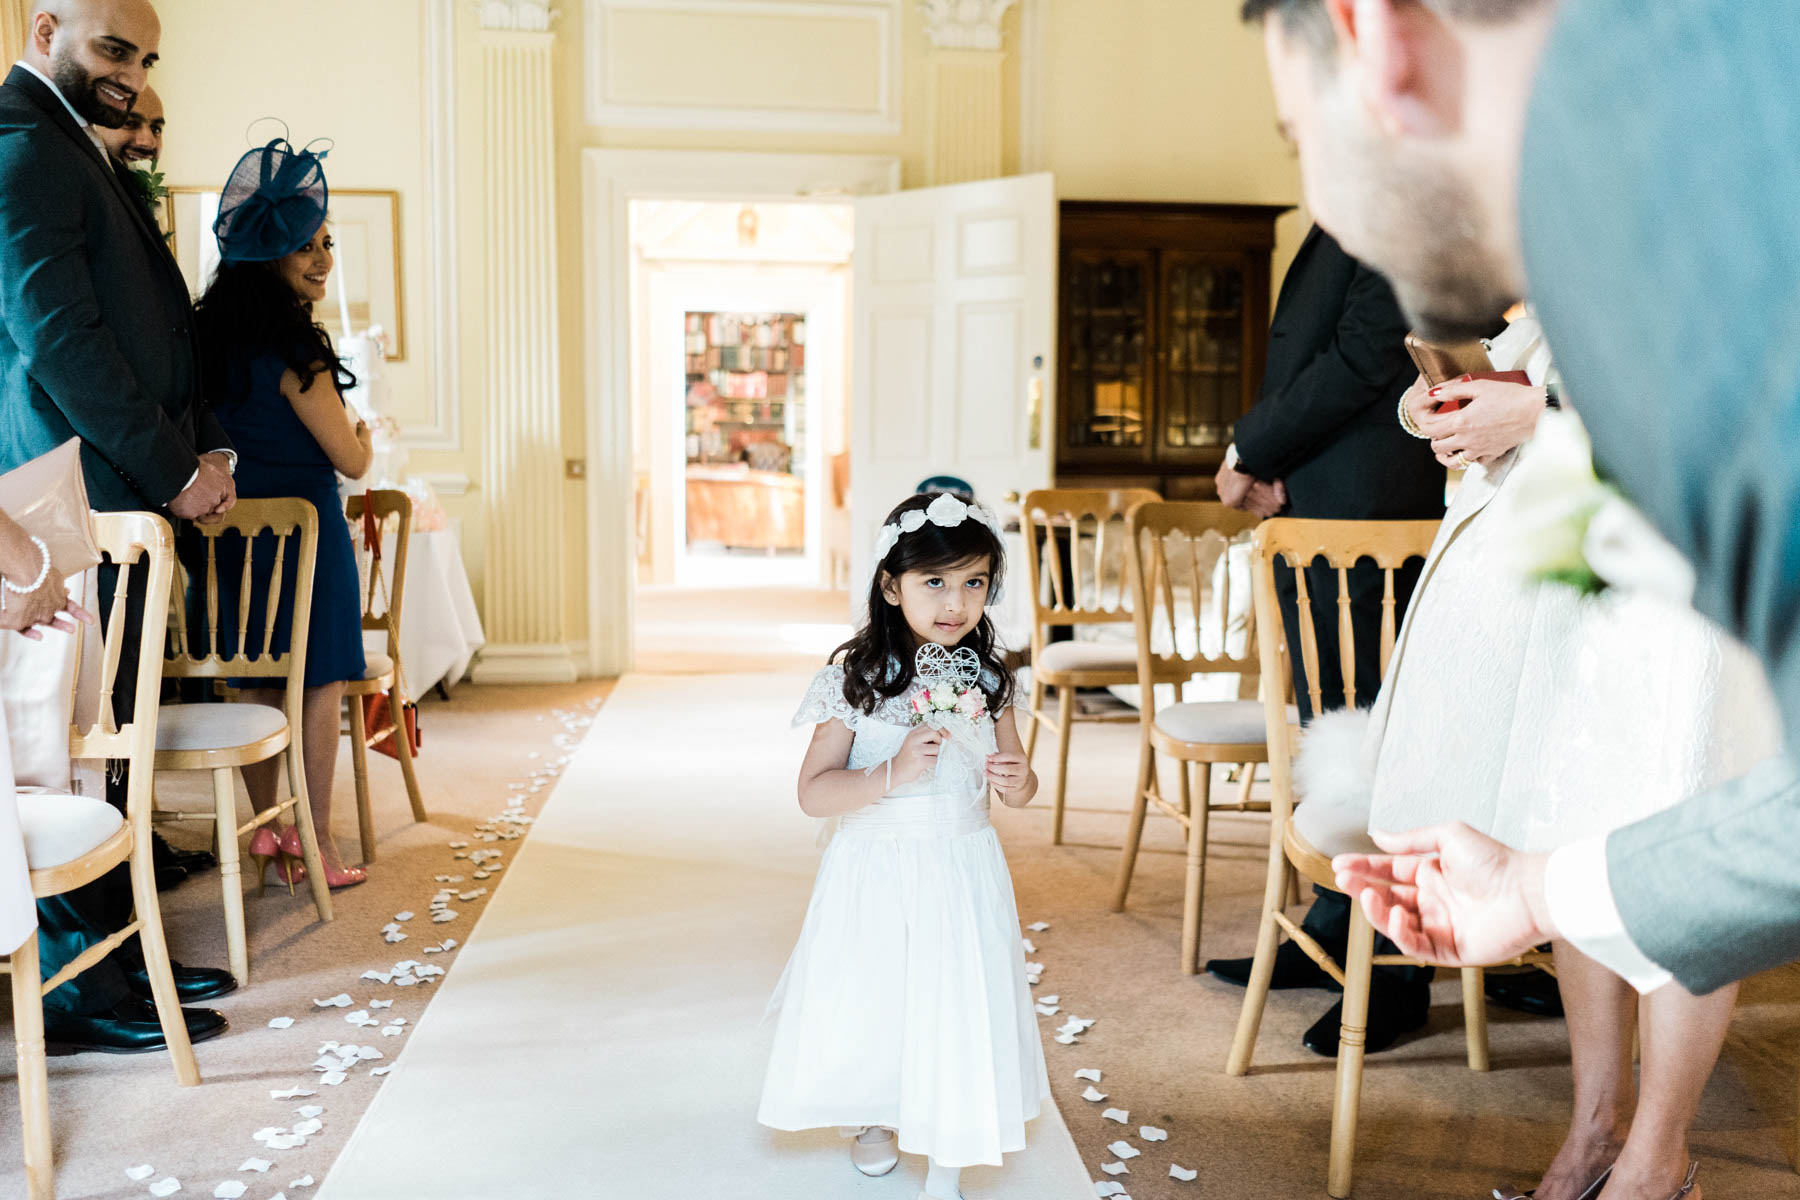 Eshott Hall Wedding Photographer | flower girl walks down aisle